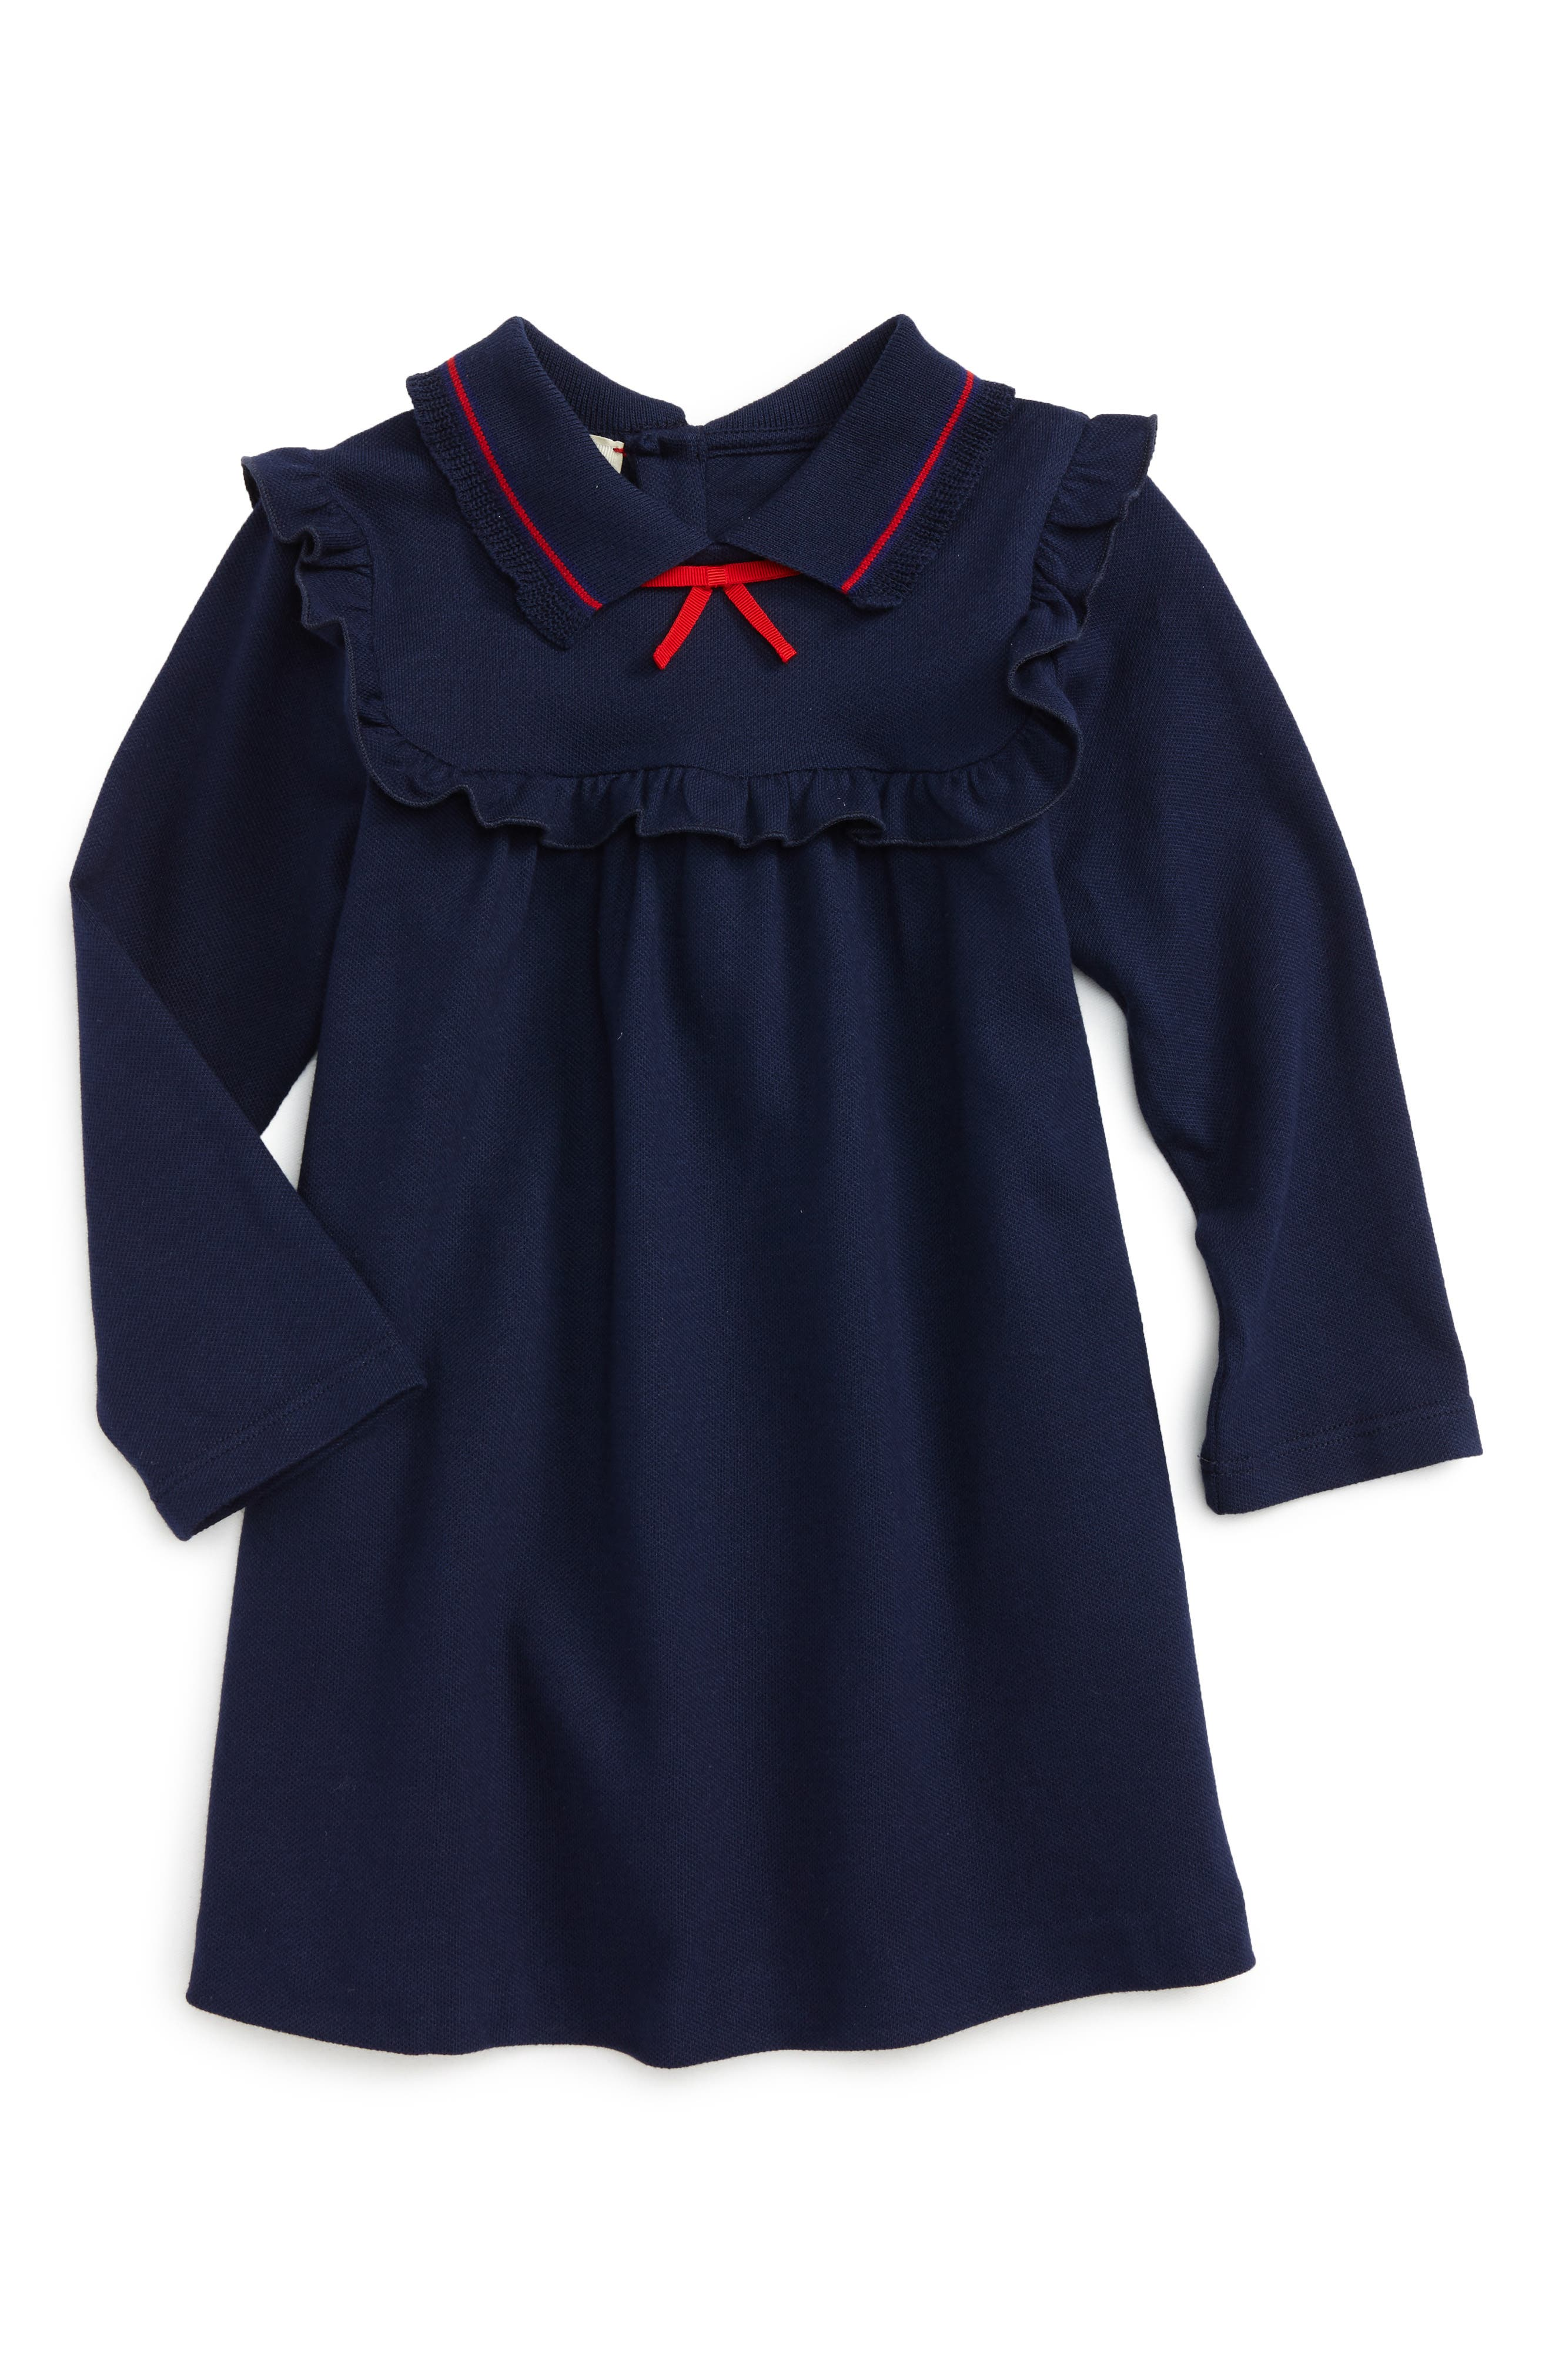 Gucci Ruffle Yoke Dress (Baby Girls)